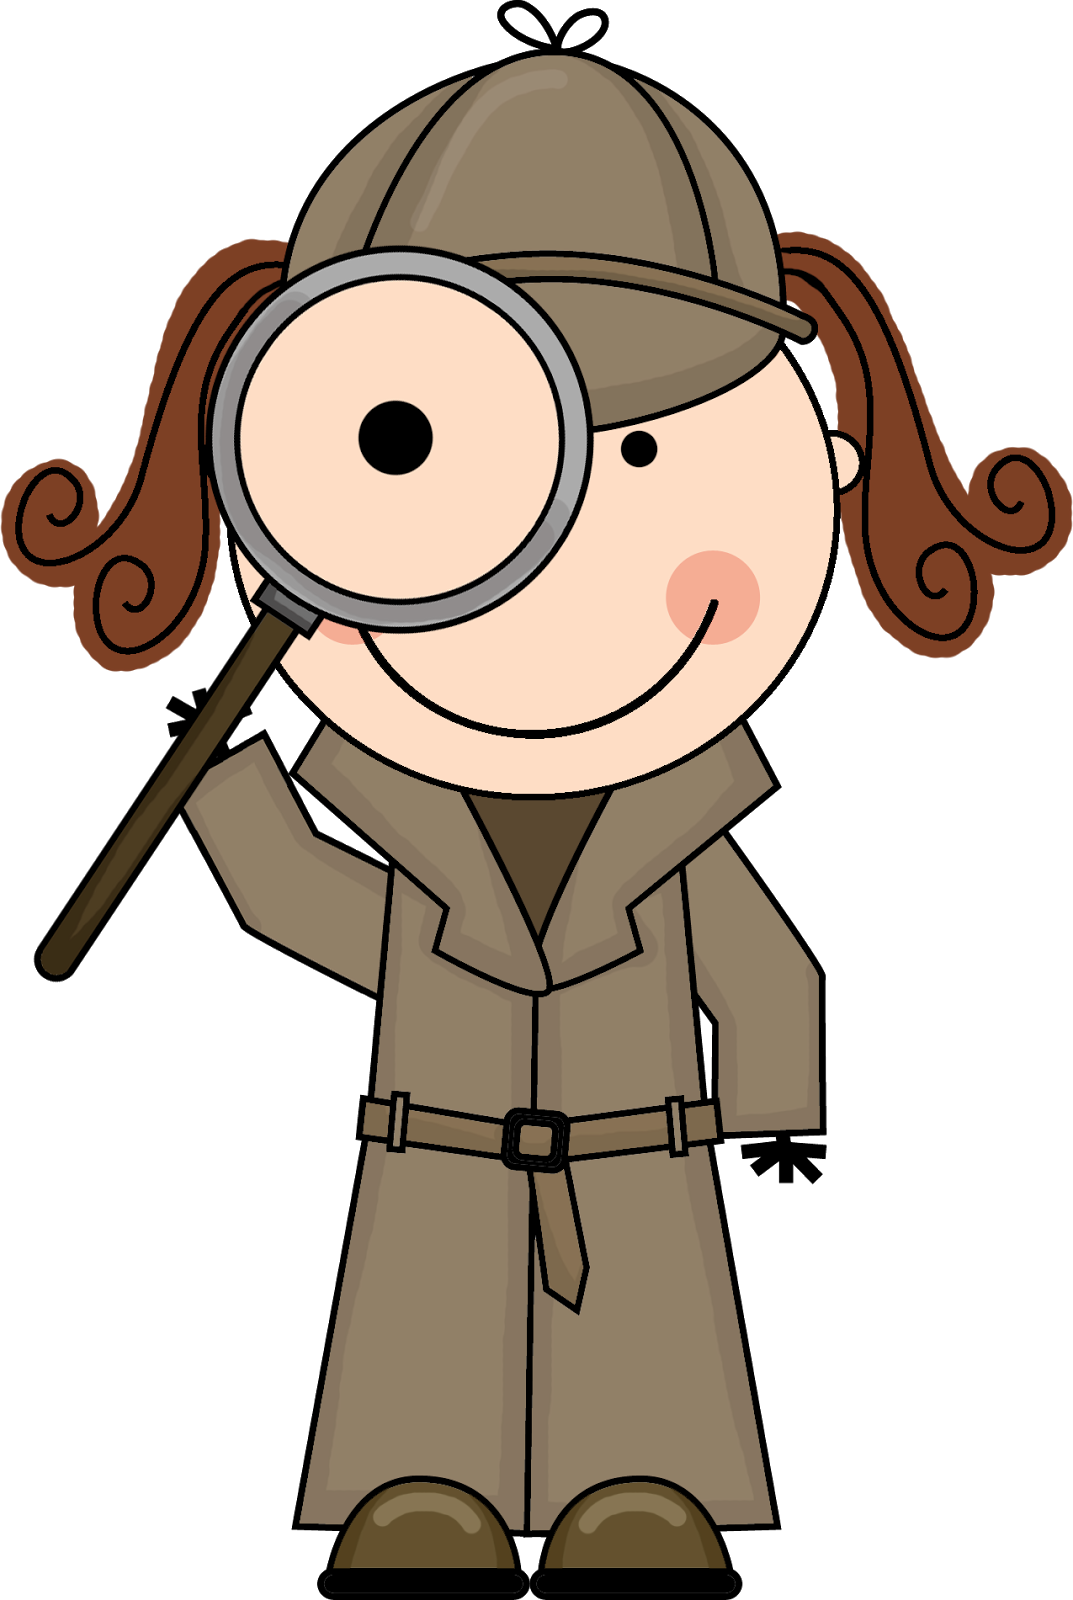 Sherlock Holmes clipart kid detective Art Children? Diagnosed from Early